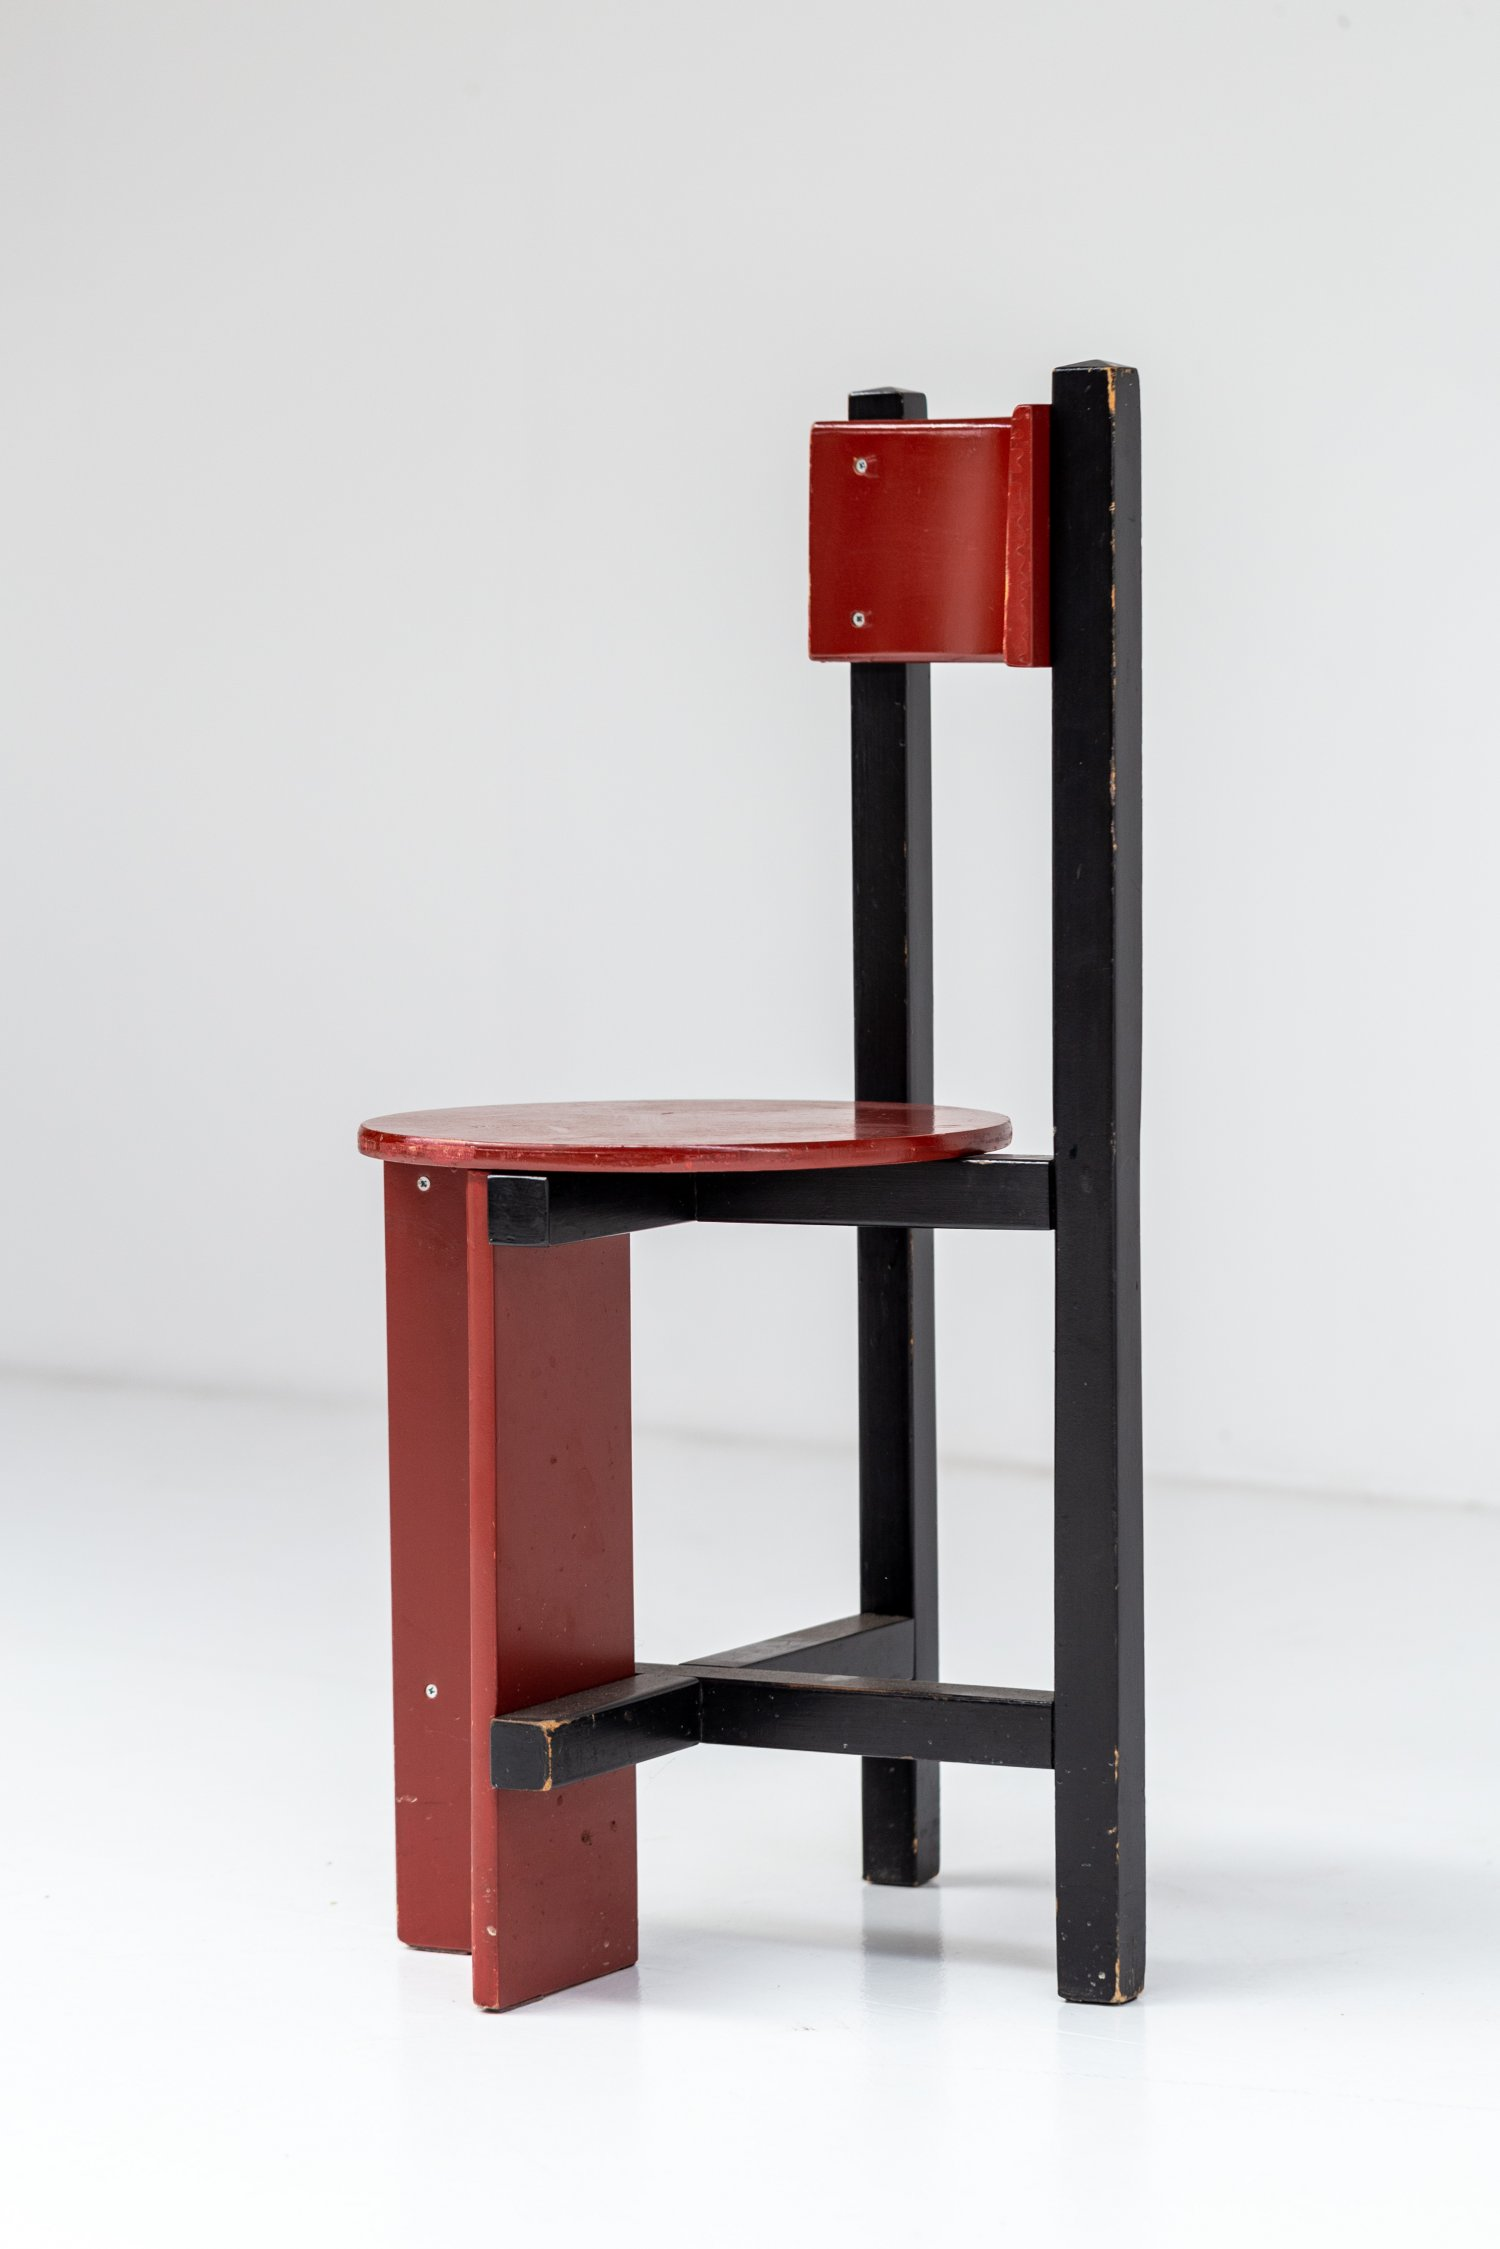 Piet Blom 'Bastille' chair